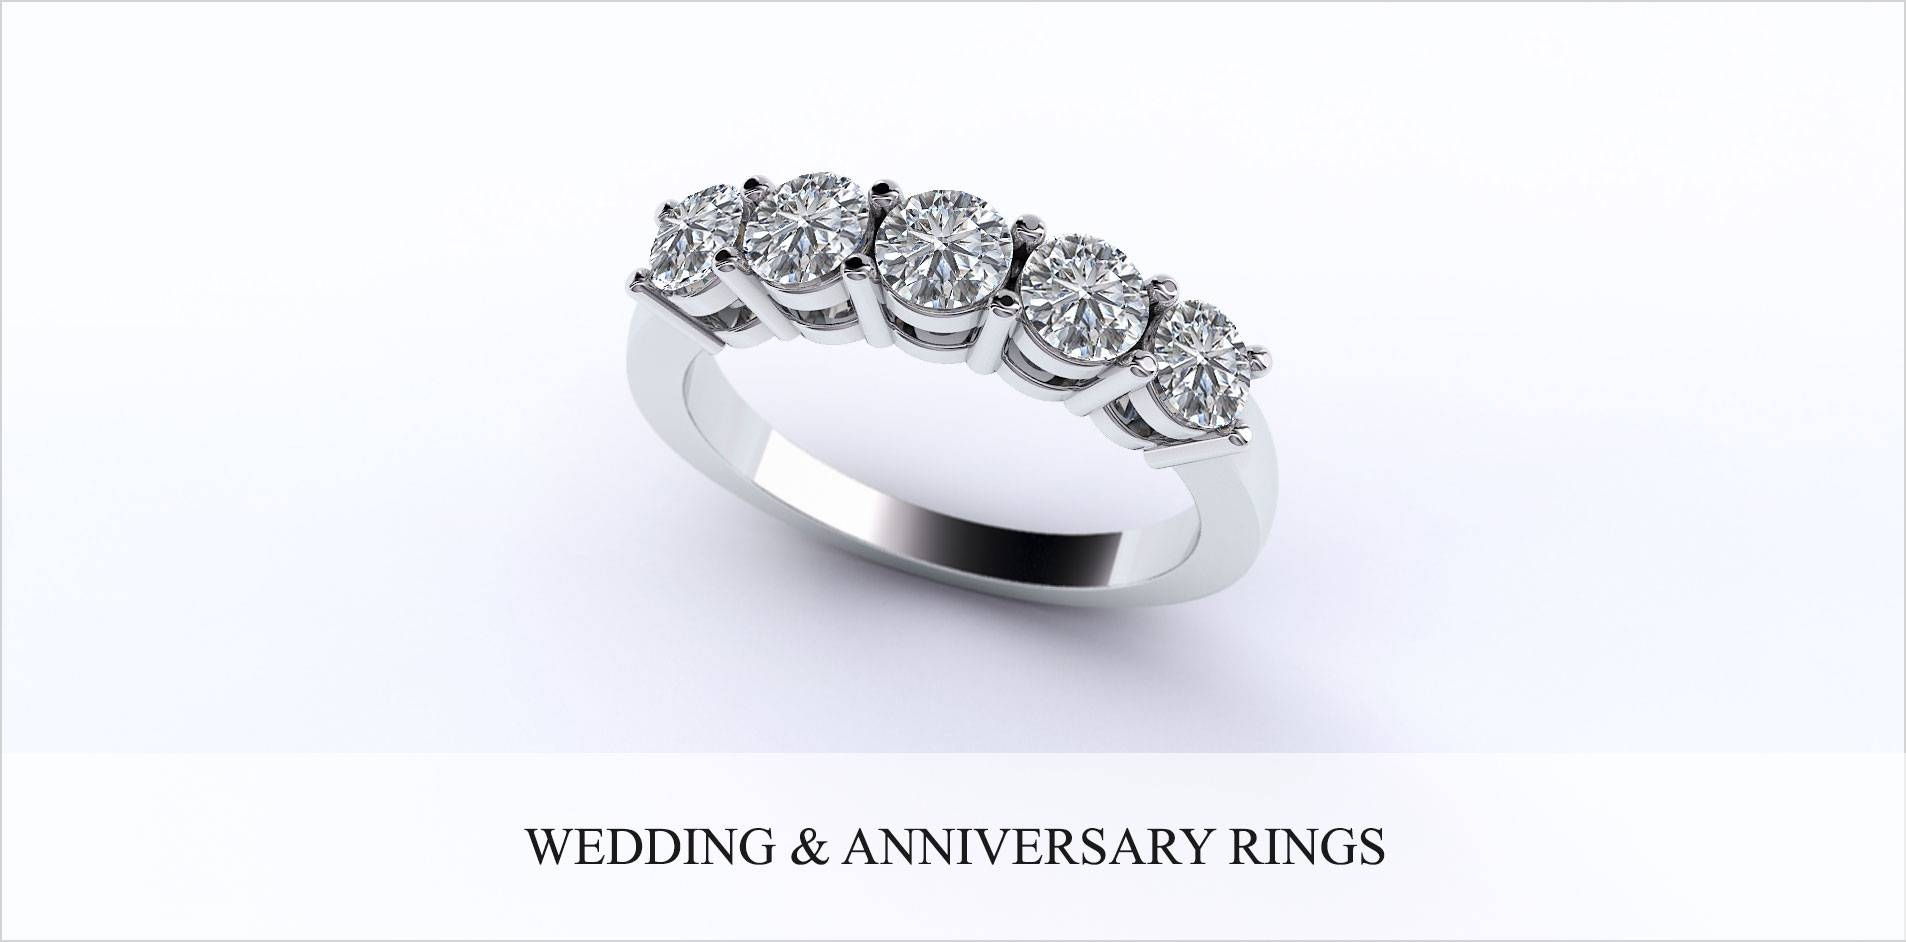 w diamond present jewellers in princess c peoples future rings collections wedding v cut ring engagement t past